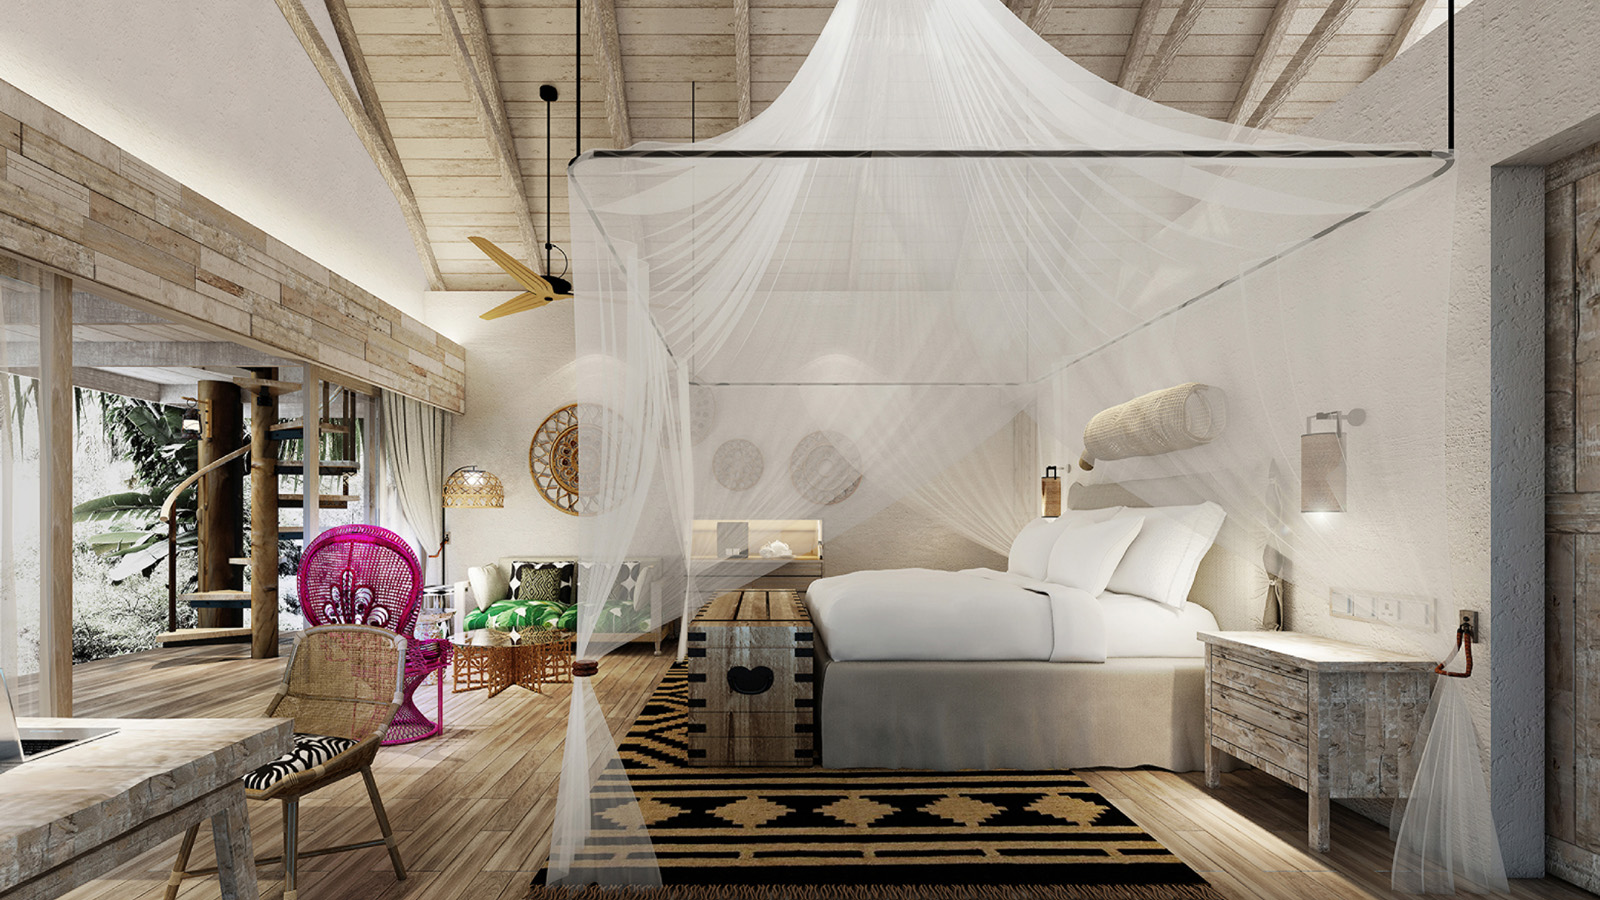 Four seasons to manage exclusive luxury resort on for Exclusive luxury hotels